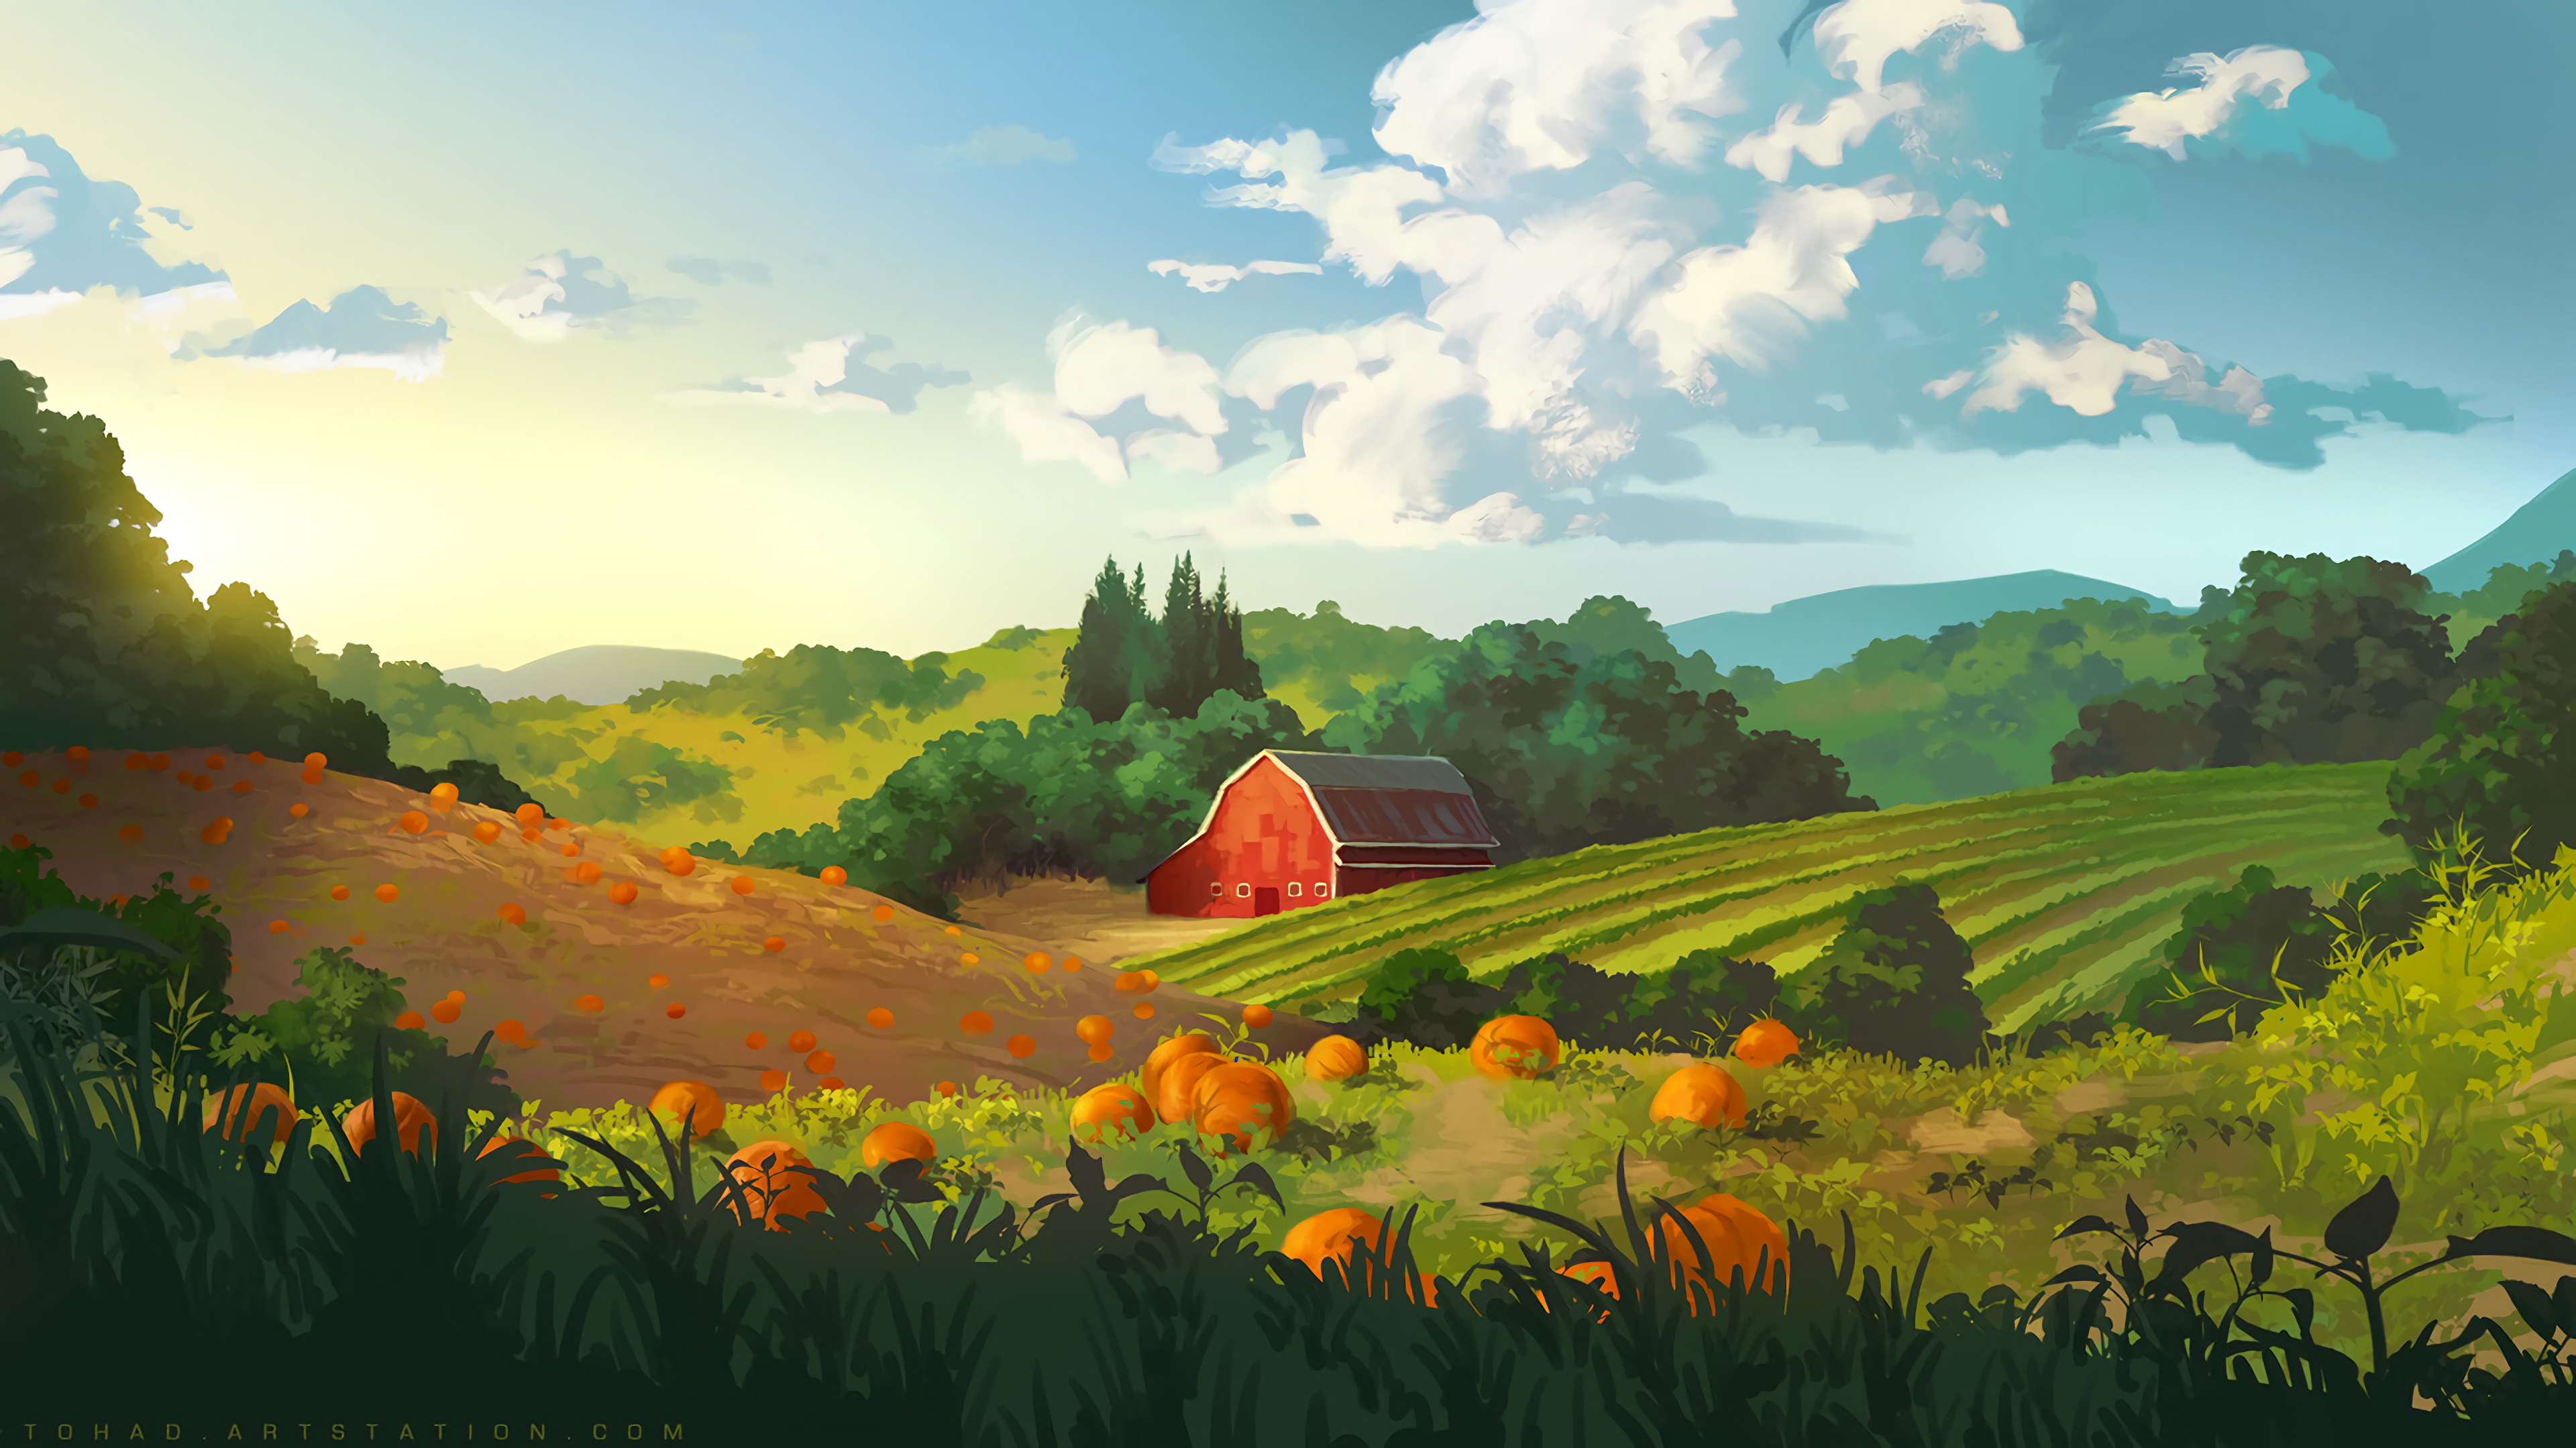 130934 download wallpaper Art, Pumpkin, Building, Field, Hills screensavers and pictures for free